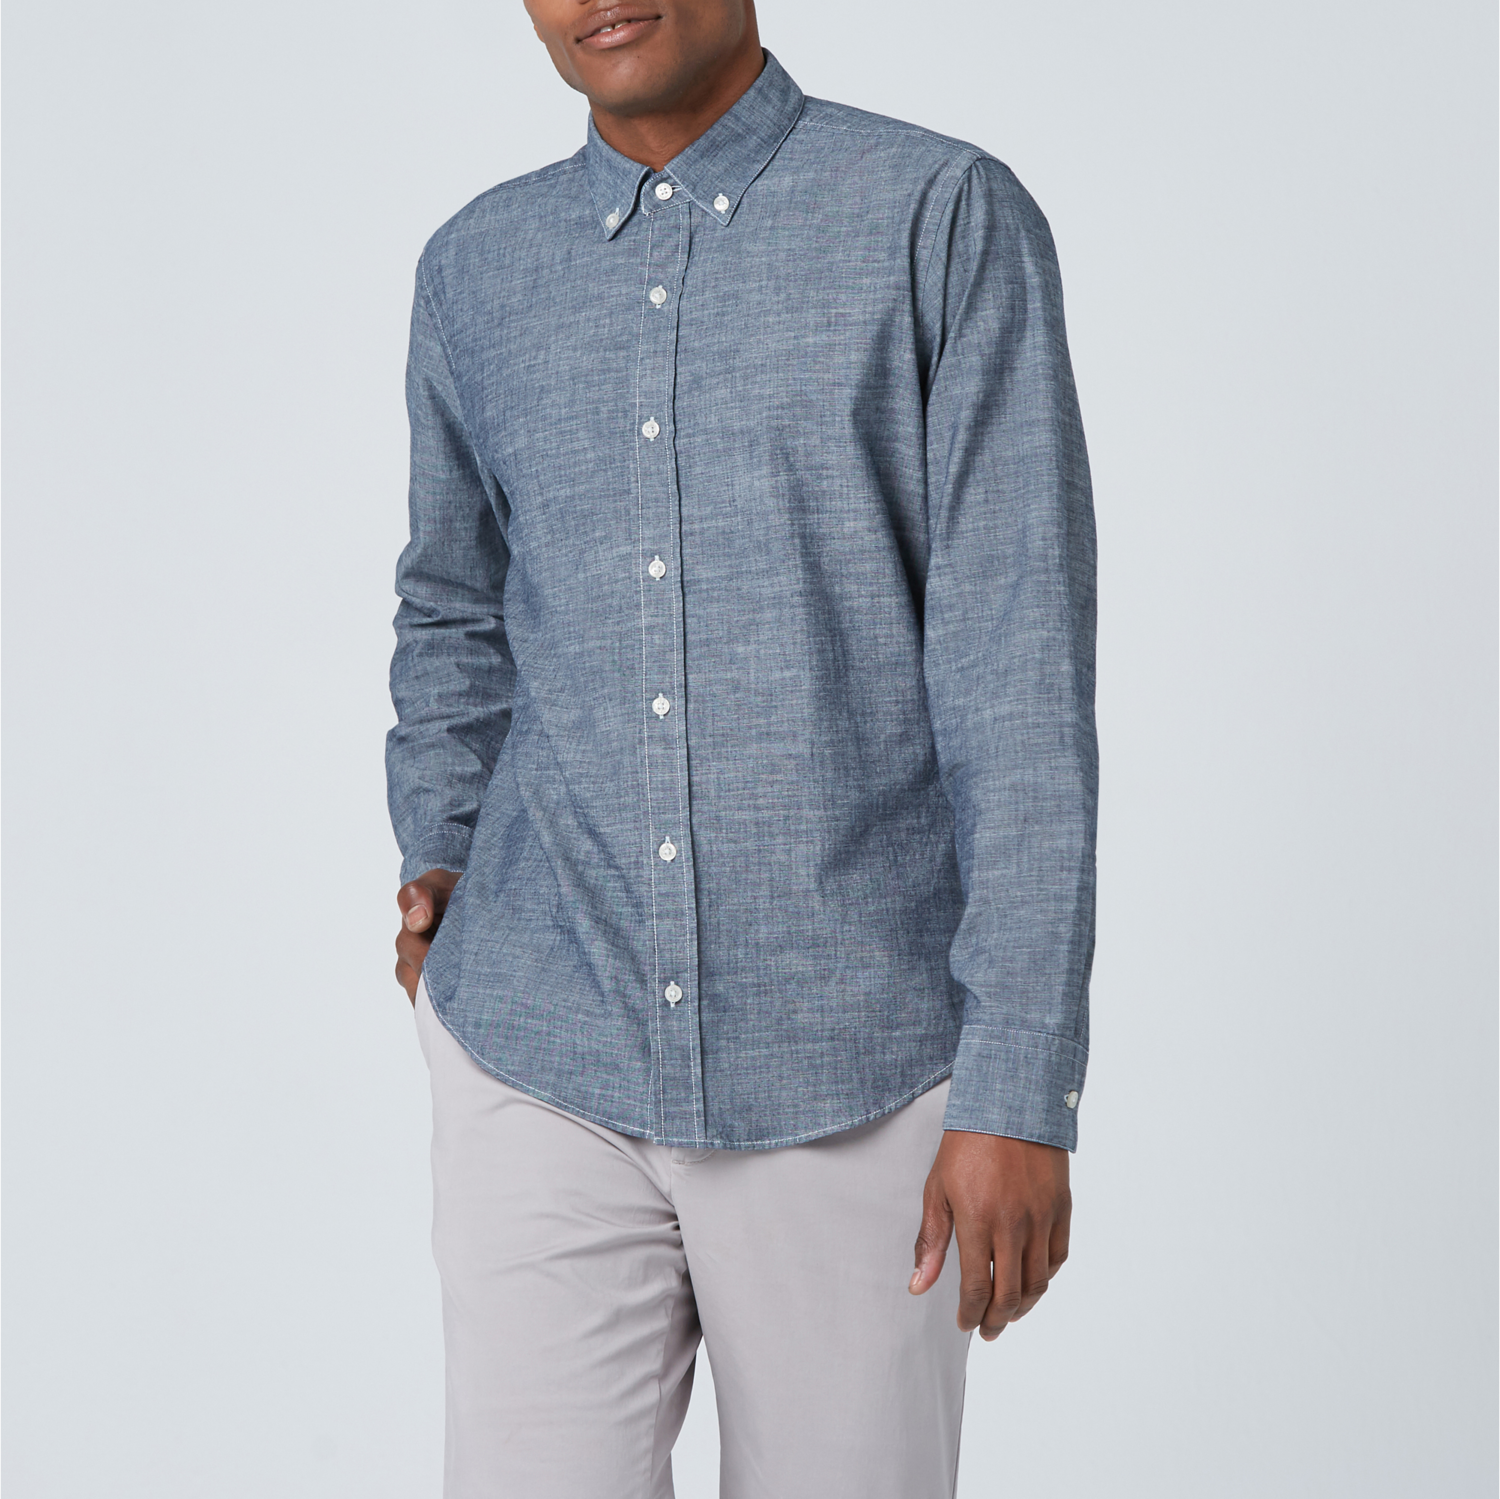 a7a5c3eb Mens Lightweight Chambray Button Down Shirt In Blue $80 | DSTLD